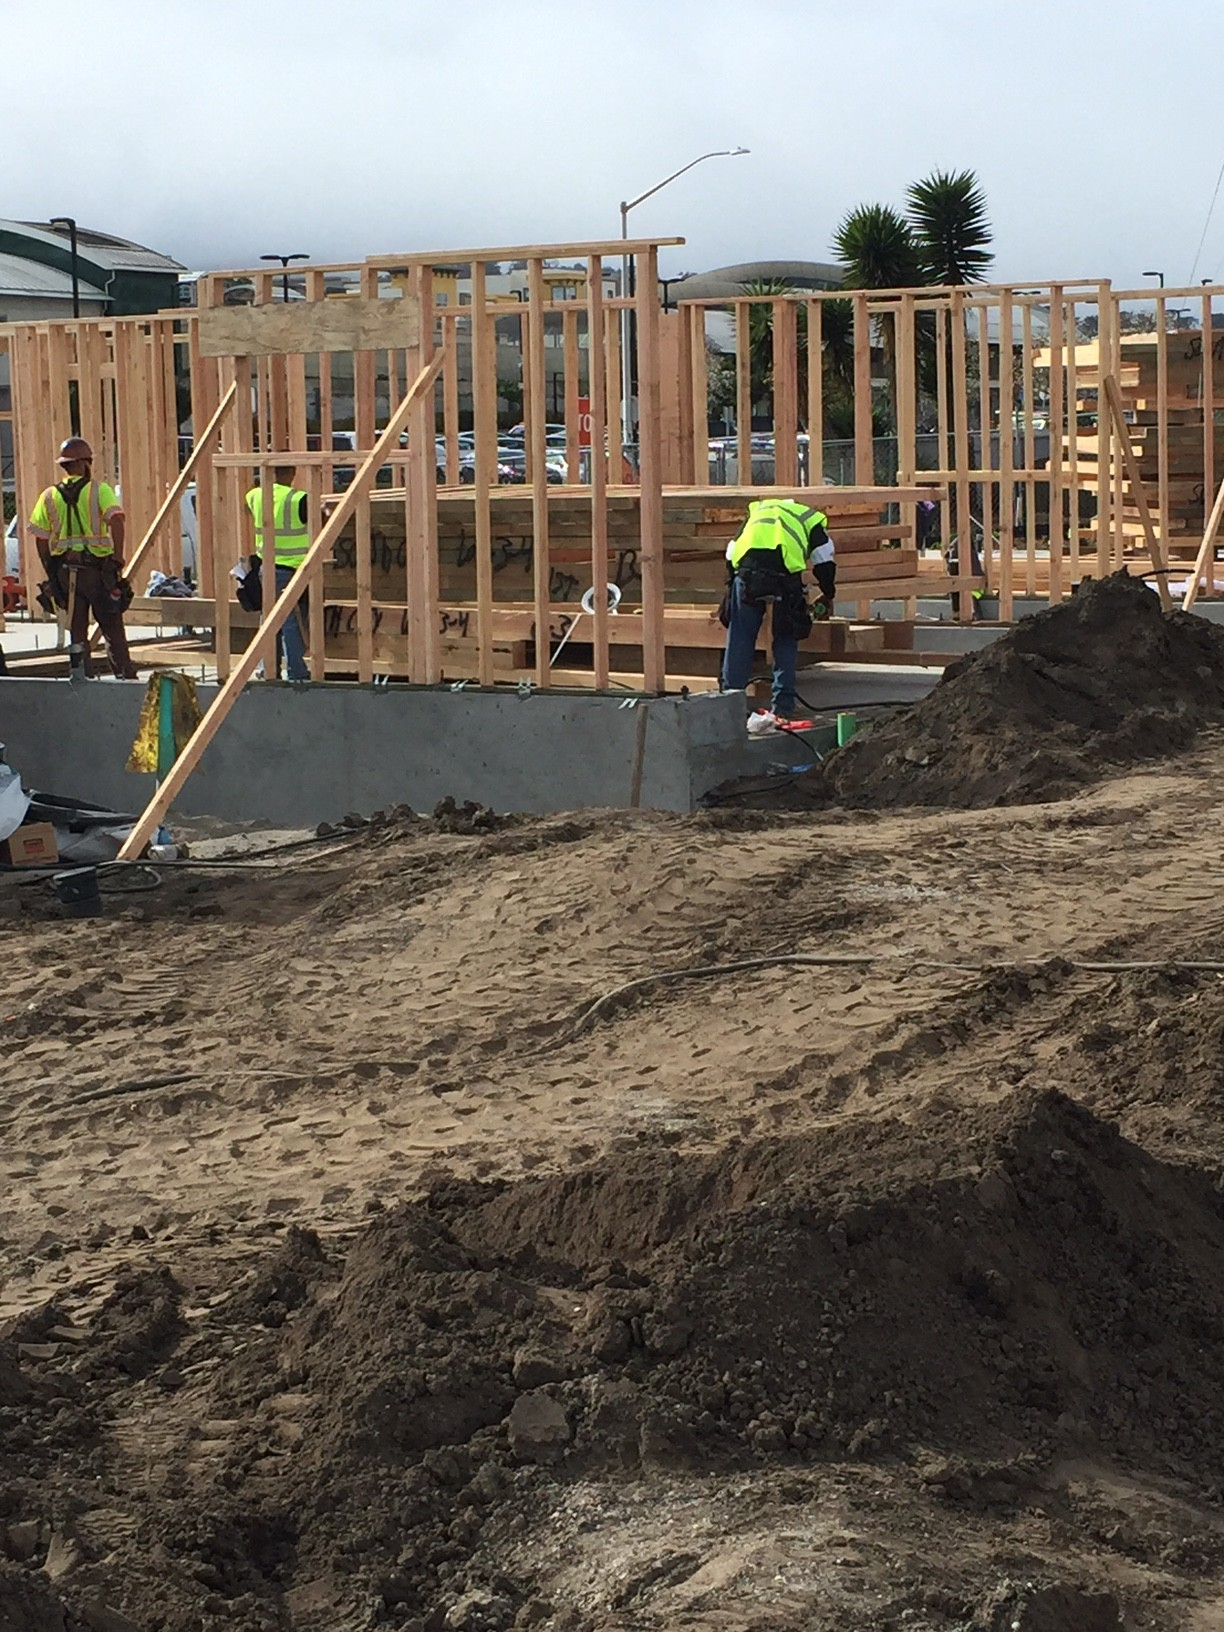 Construction Woes Continue to Concern Neighbors: Update on Sunshine ...